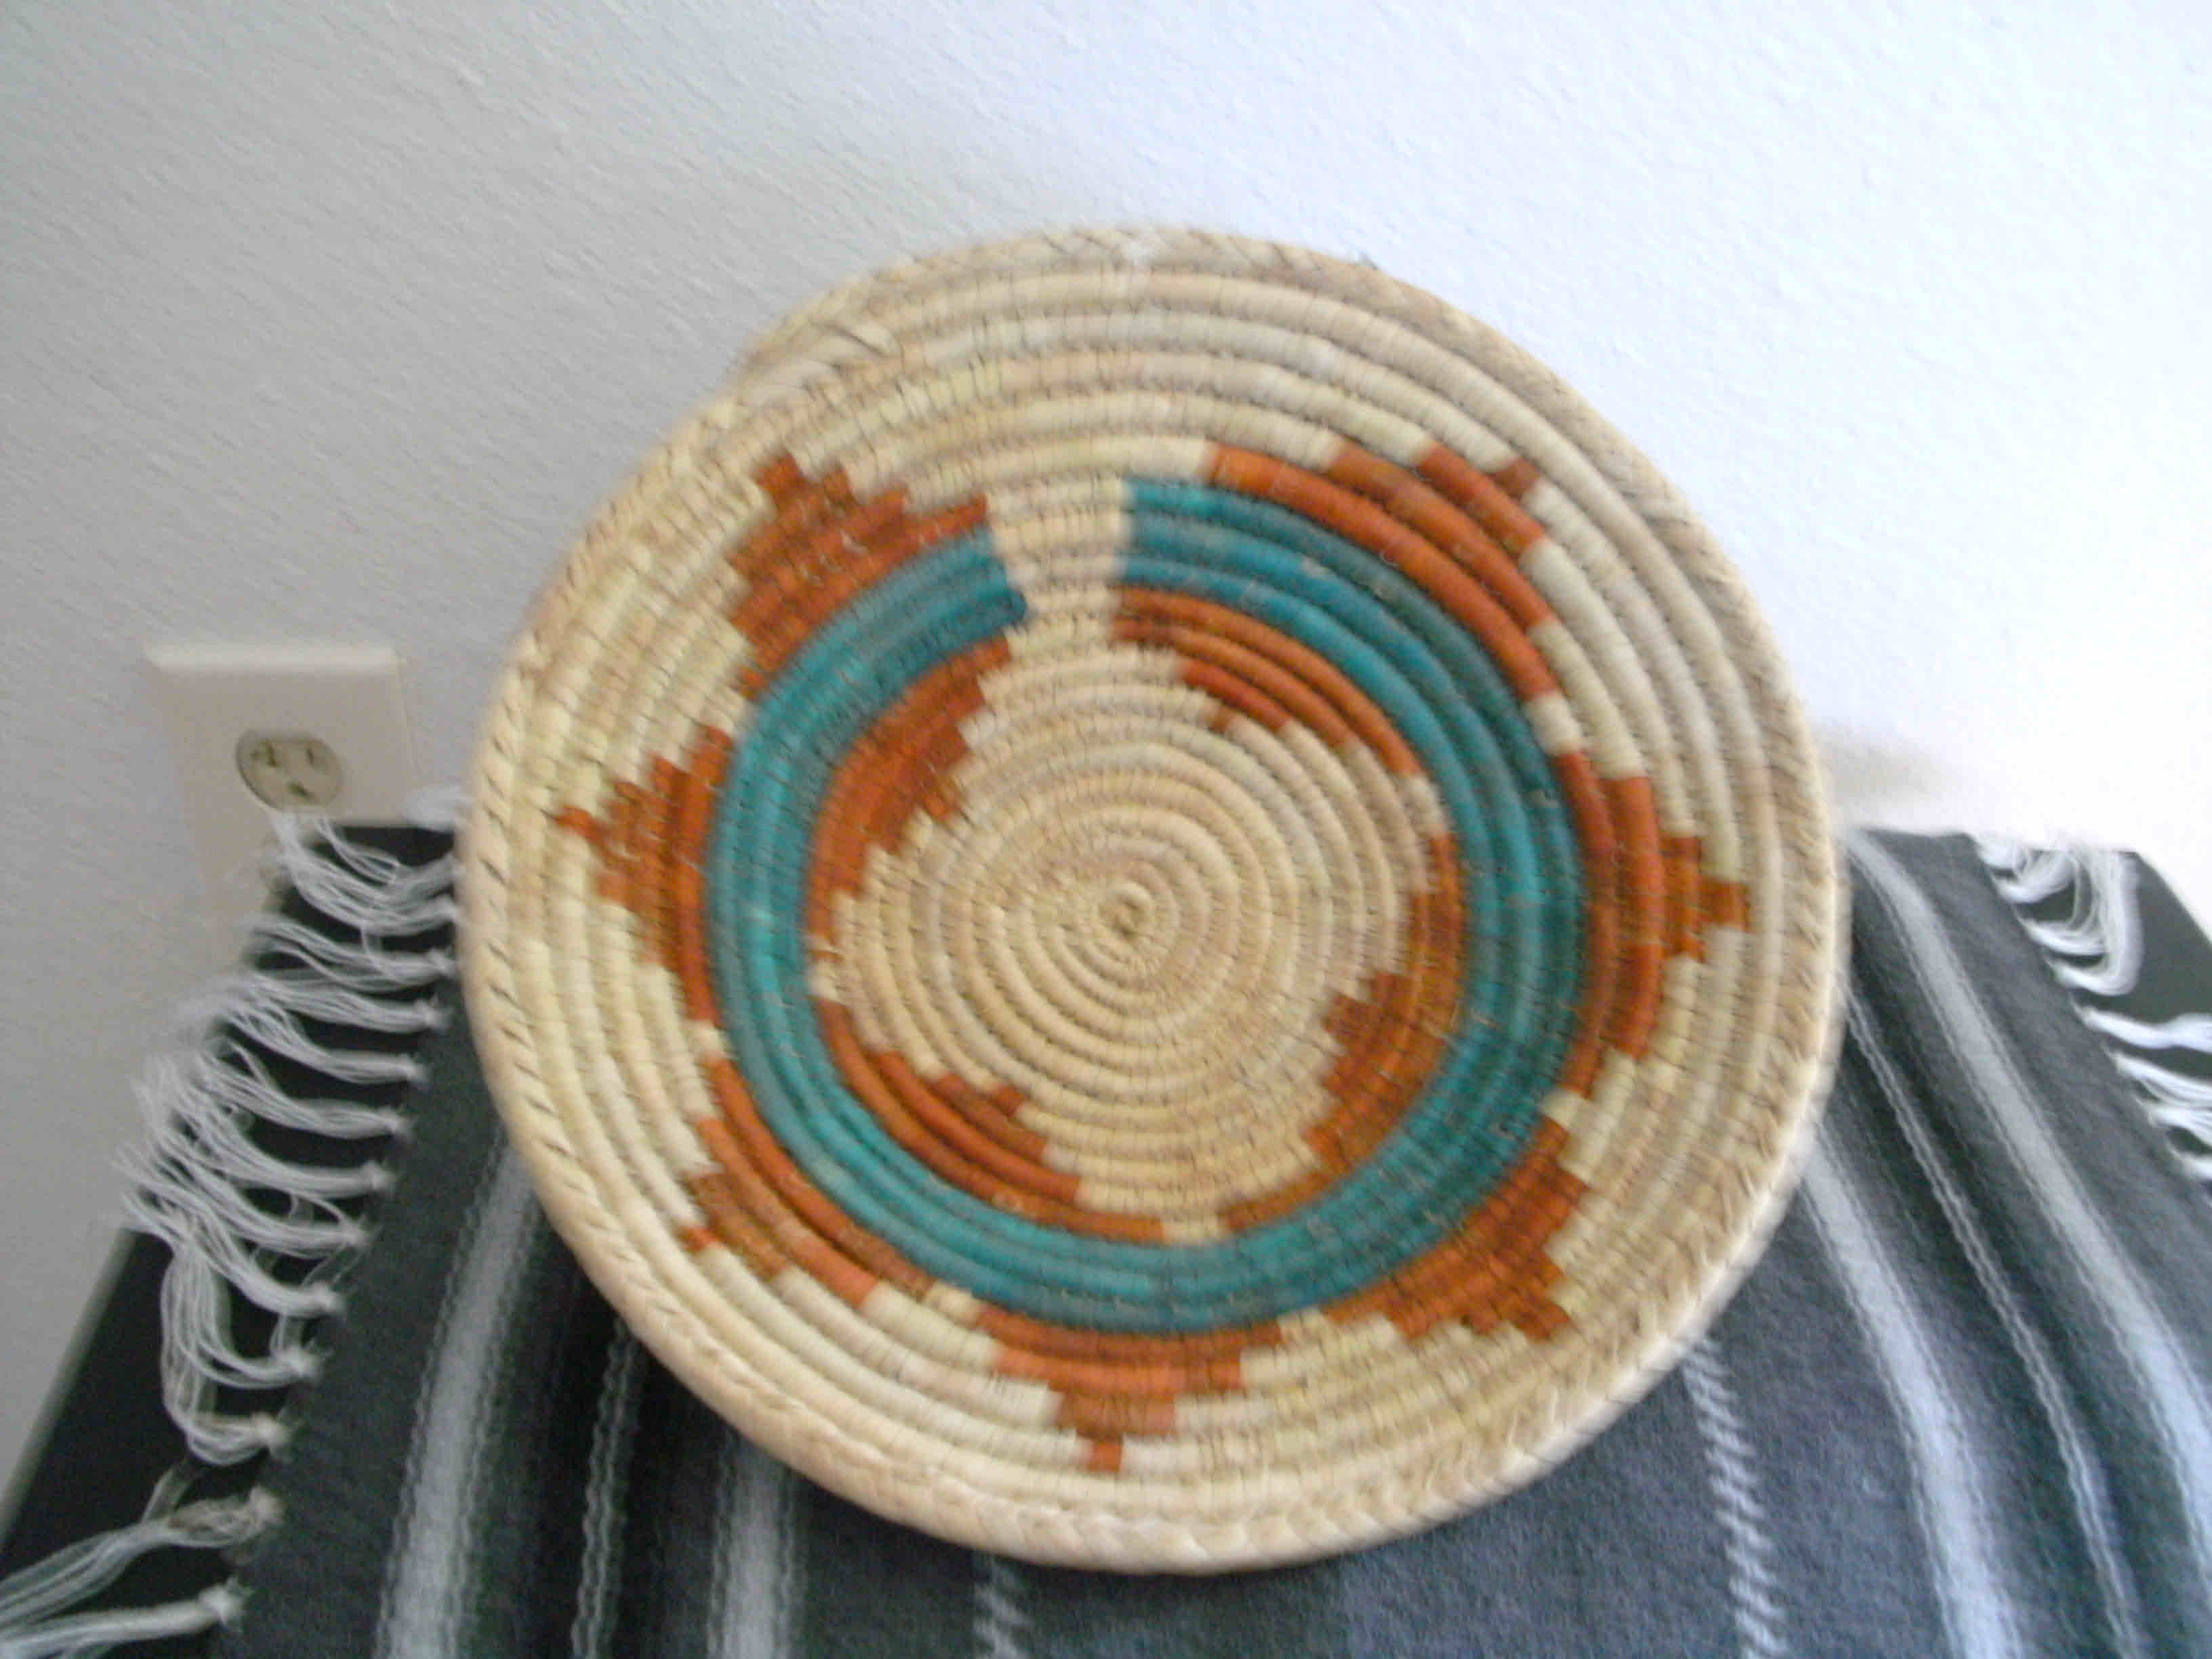 Southwest Indian Wedding Design Small Bowl Basket